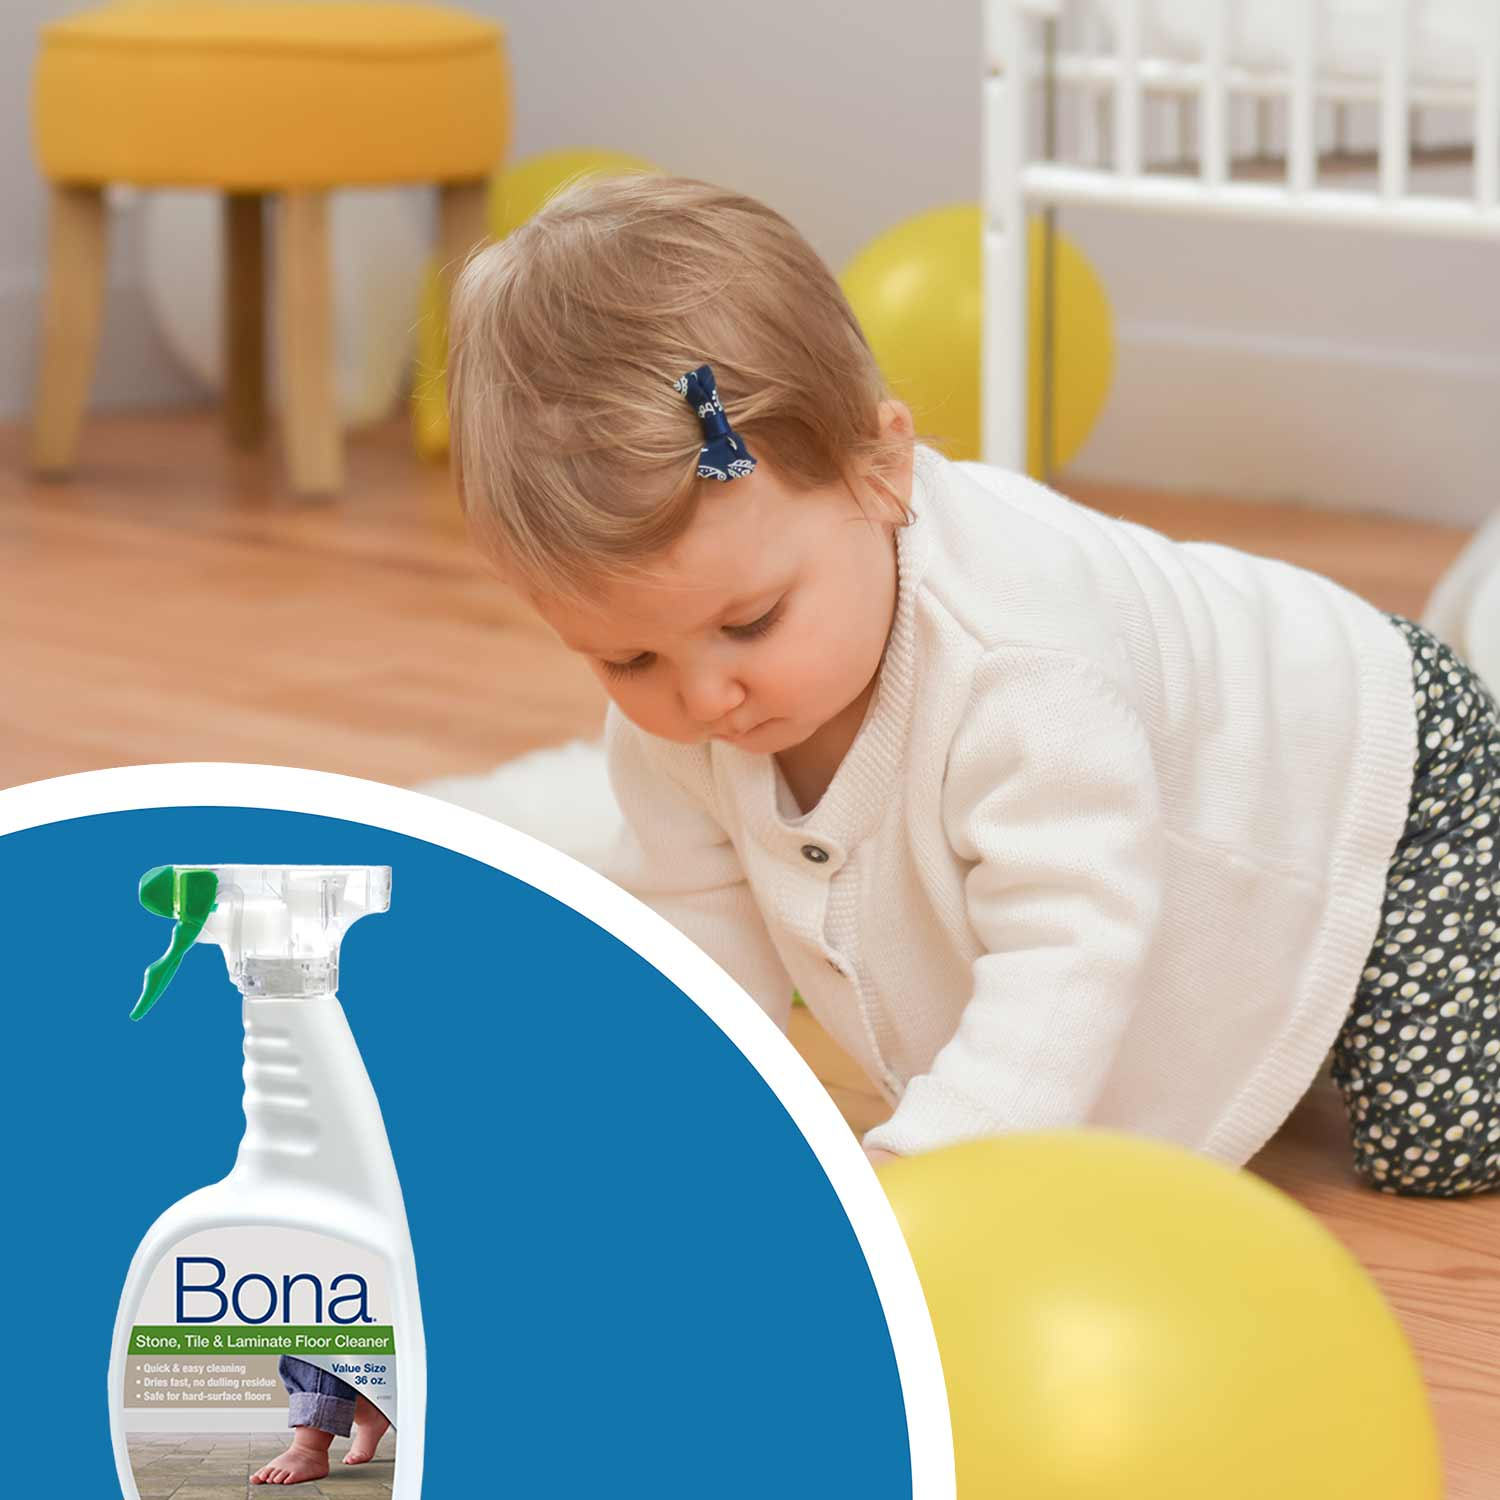 "<p><strong>The&nbsp;<a href=""https://us.bona.com/products/stl-cleaner-36oz.html"">Bona Stone, Tile & Laminate Cleaner&nbsp;</a>is an excellent choice for cleaning luxury vinyl flooring and other hard surface floors.&nbsp;</strong>Safe to use around pets and children, our floor cleaner dries fast and leaves no residue&mdash;the perfect choice when you don&rsquo;t want your floors to get in the way of your life!</p><br/>"